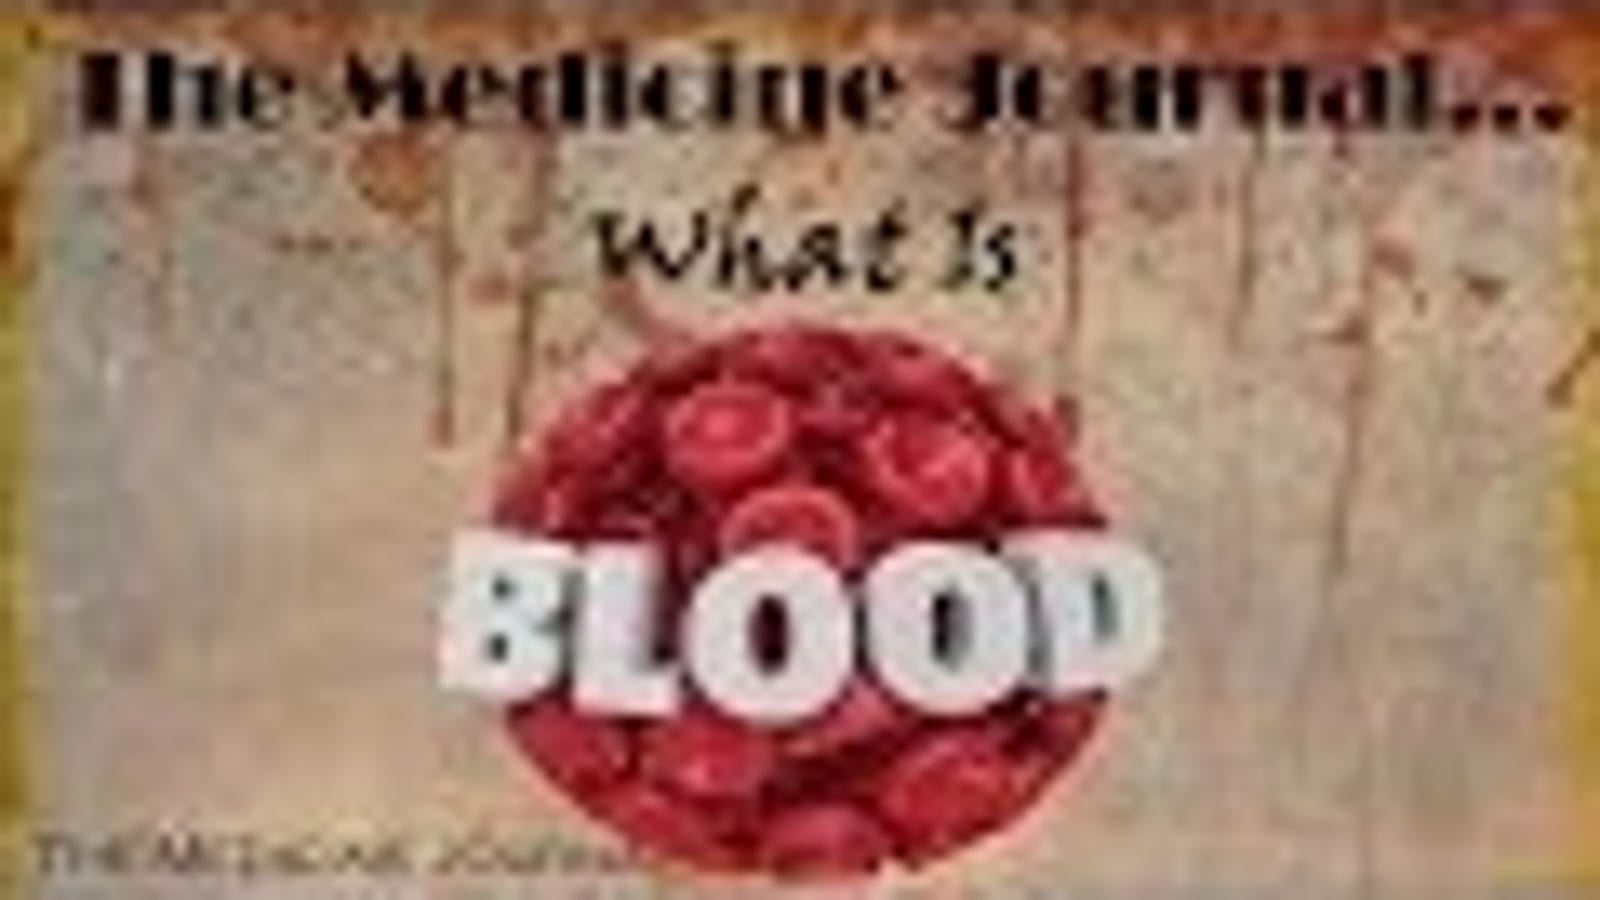 How Blood Works